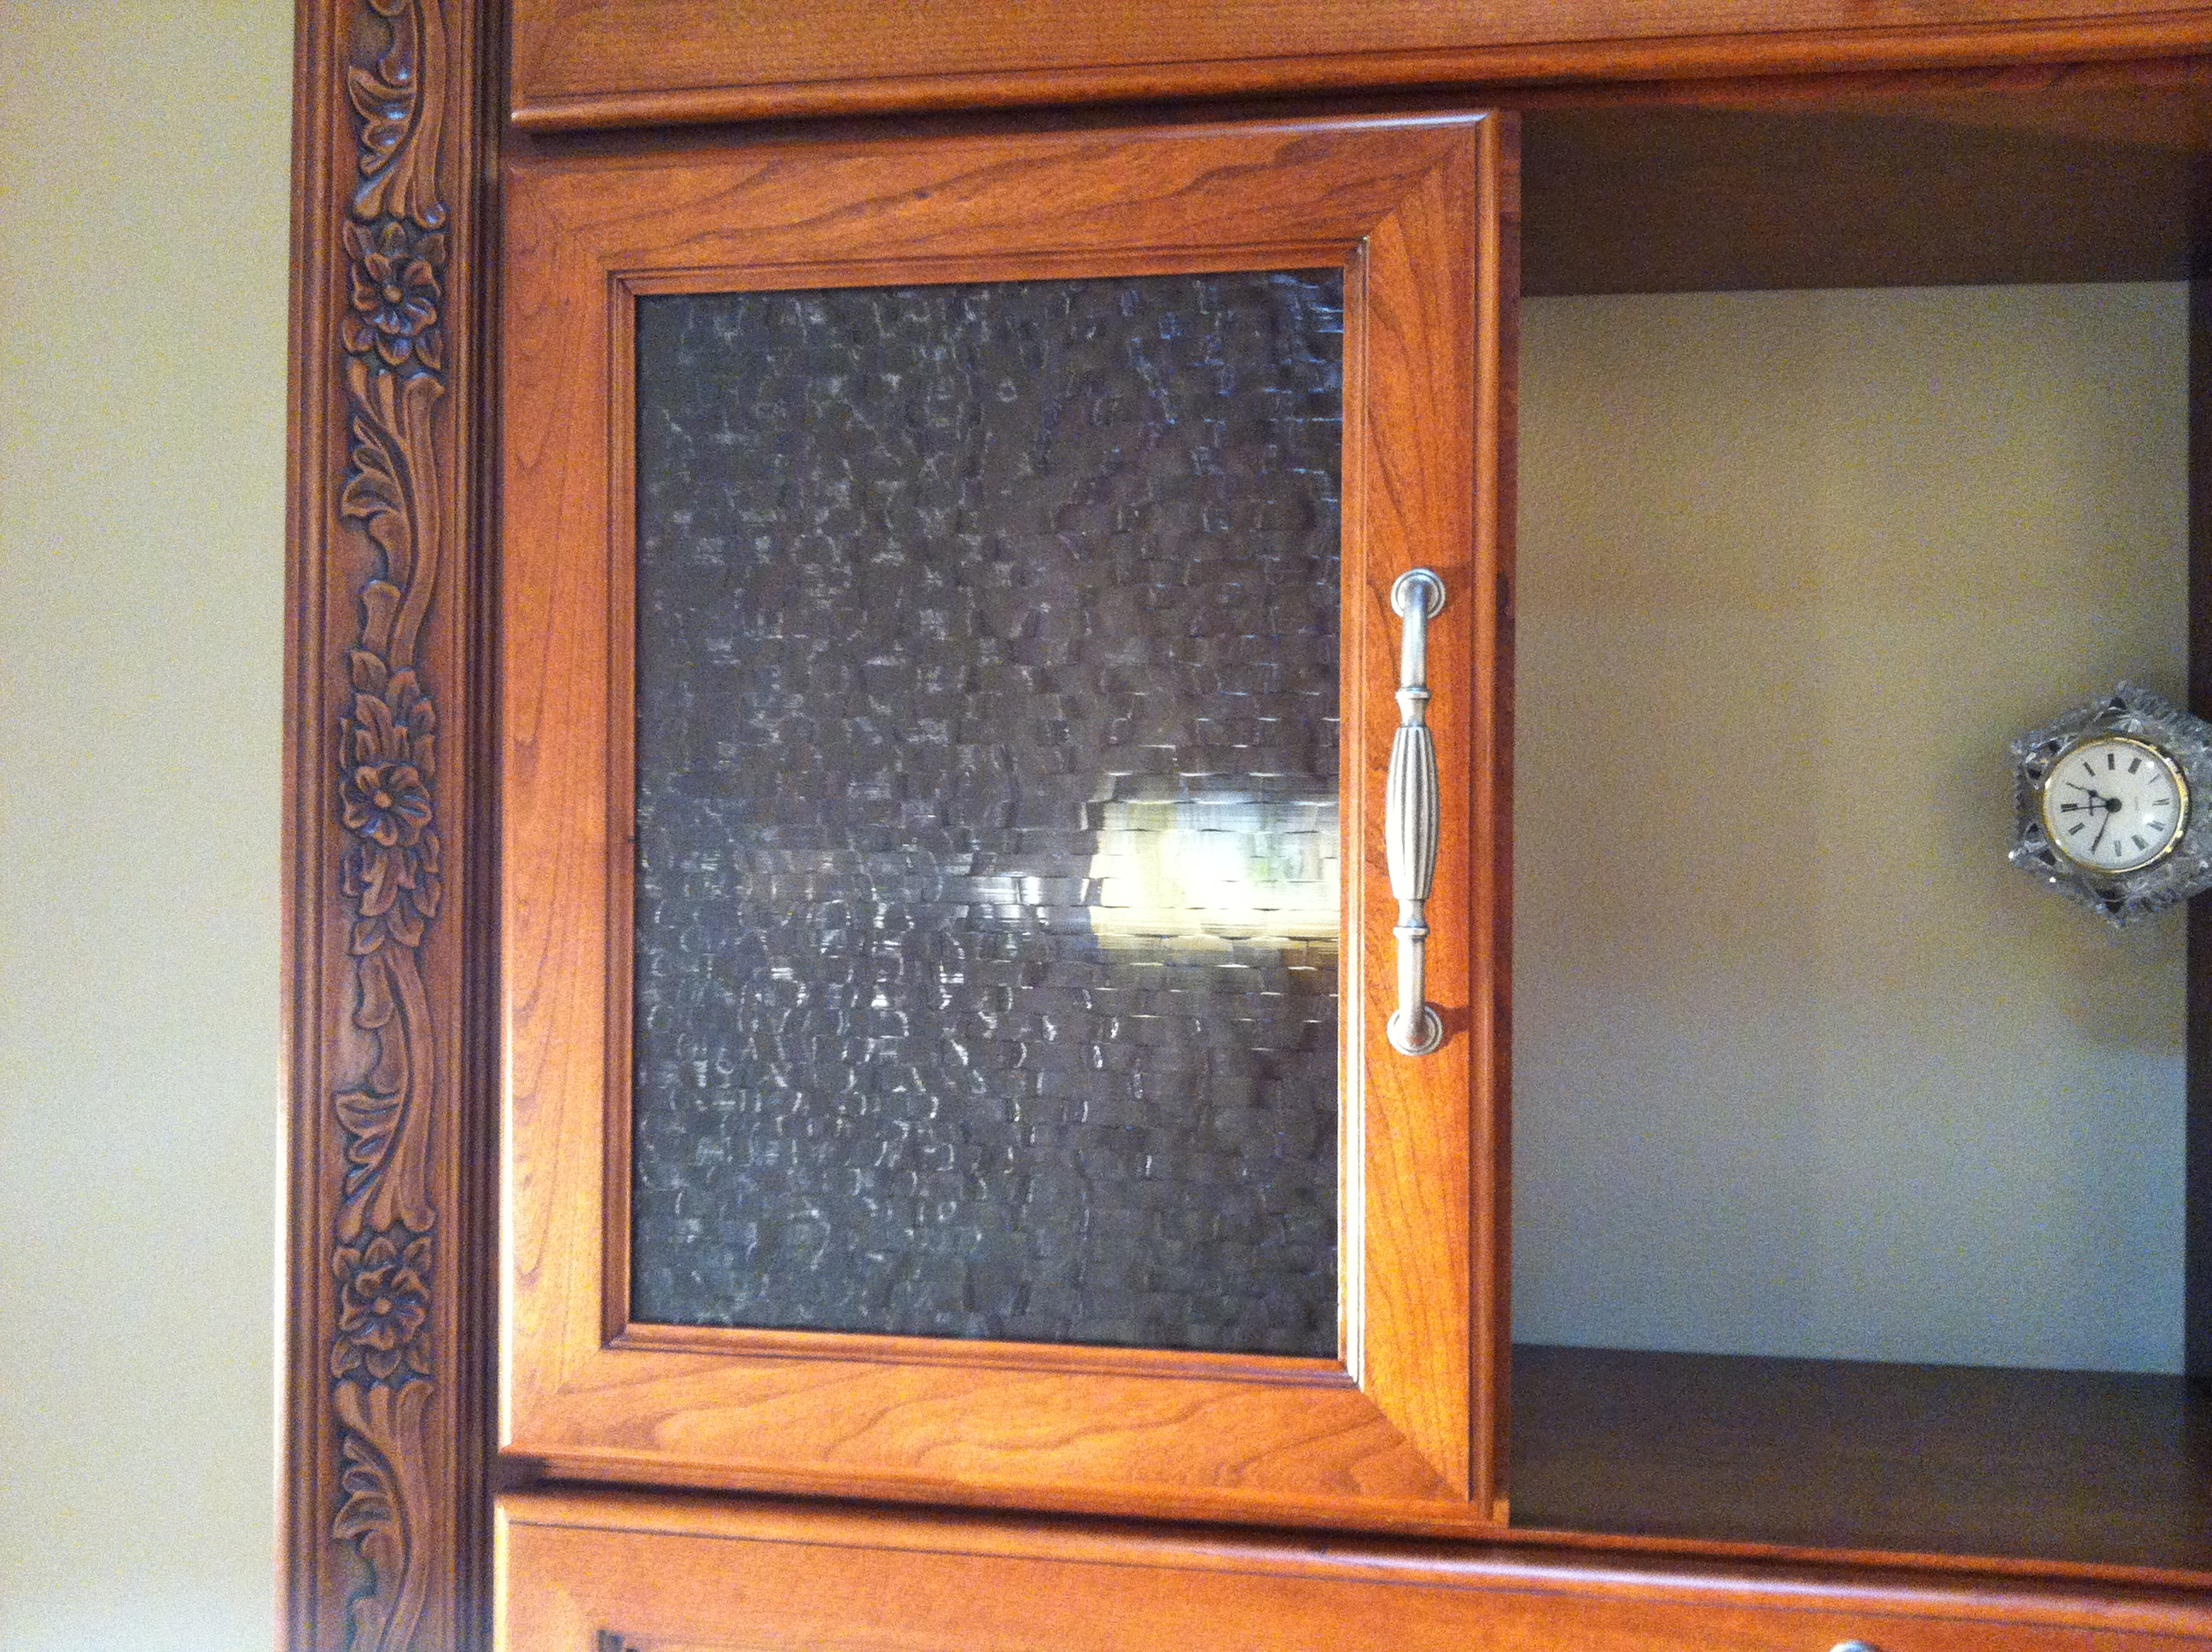 The Benefits and Challenges of Glass Front Cabinets Part I